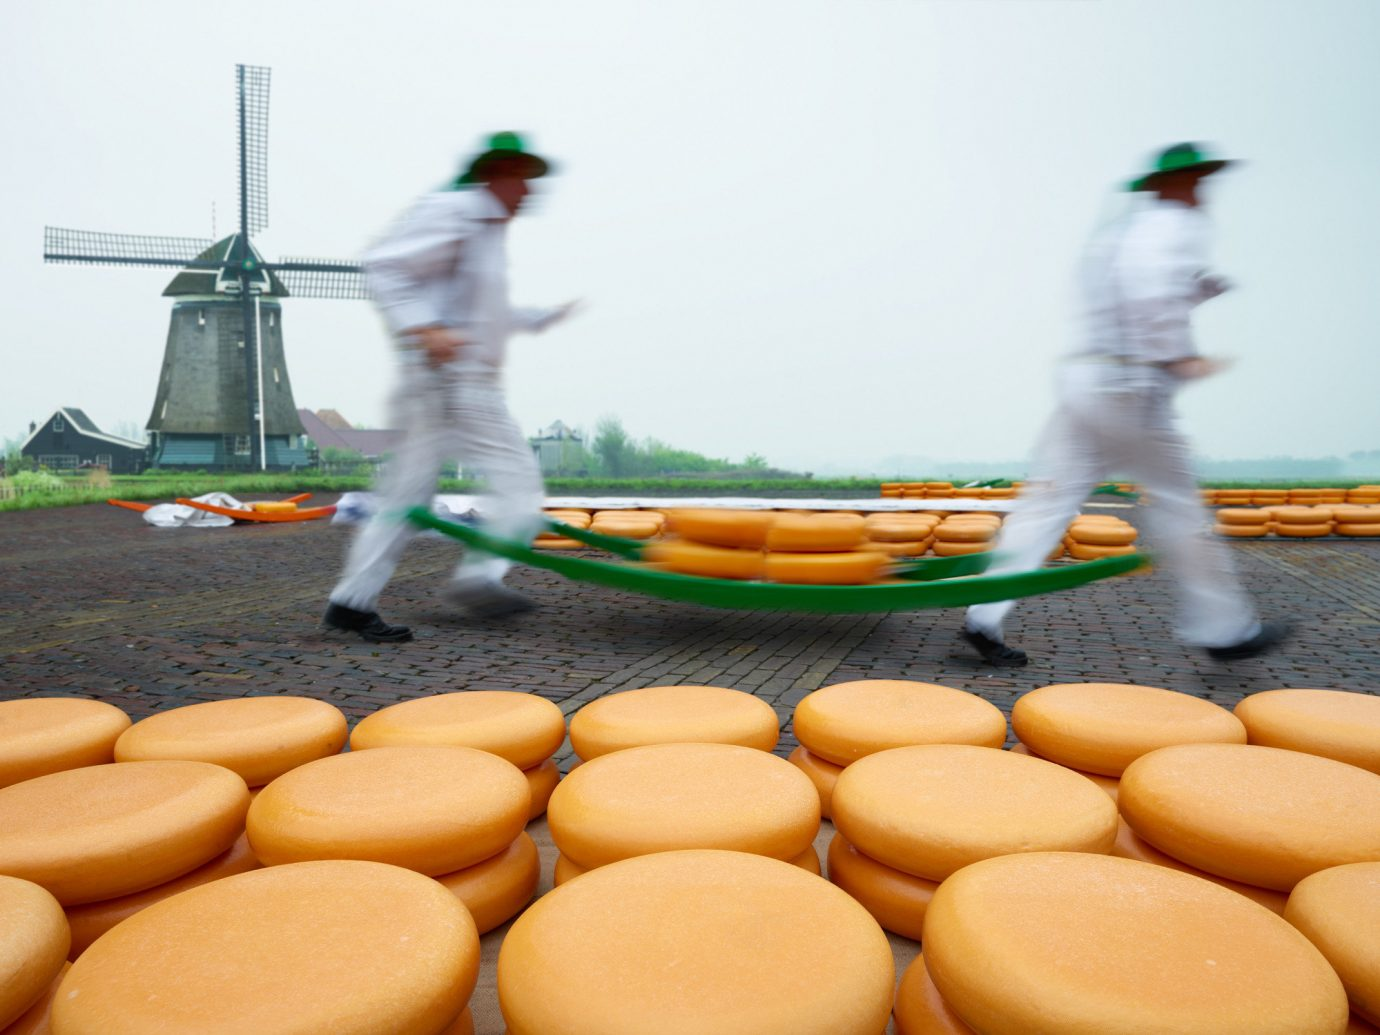 Gouda cheese being made in Gouda Netherlands